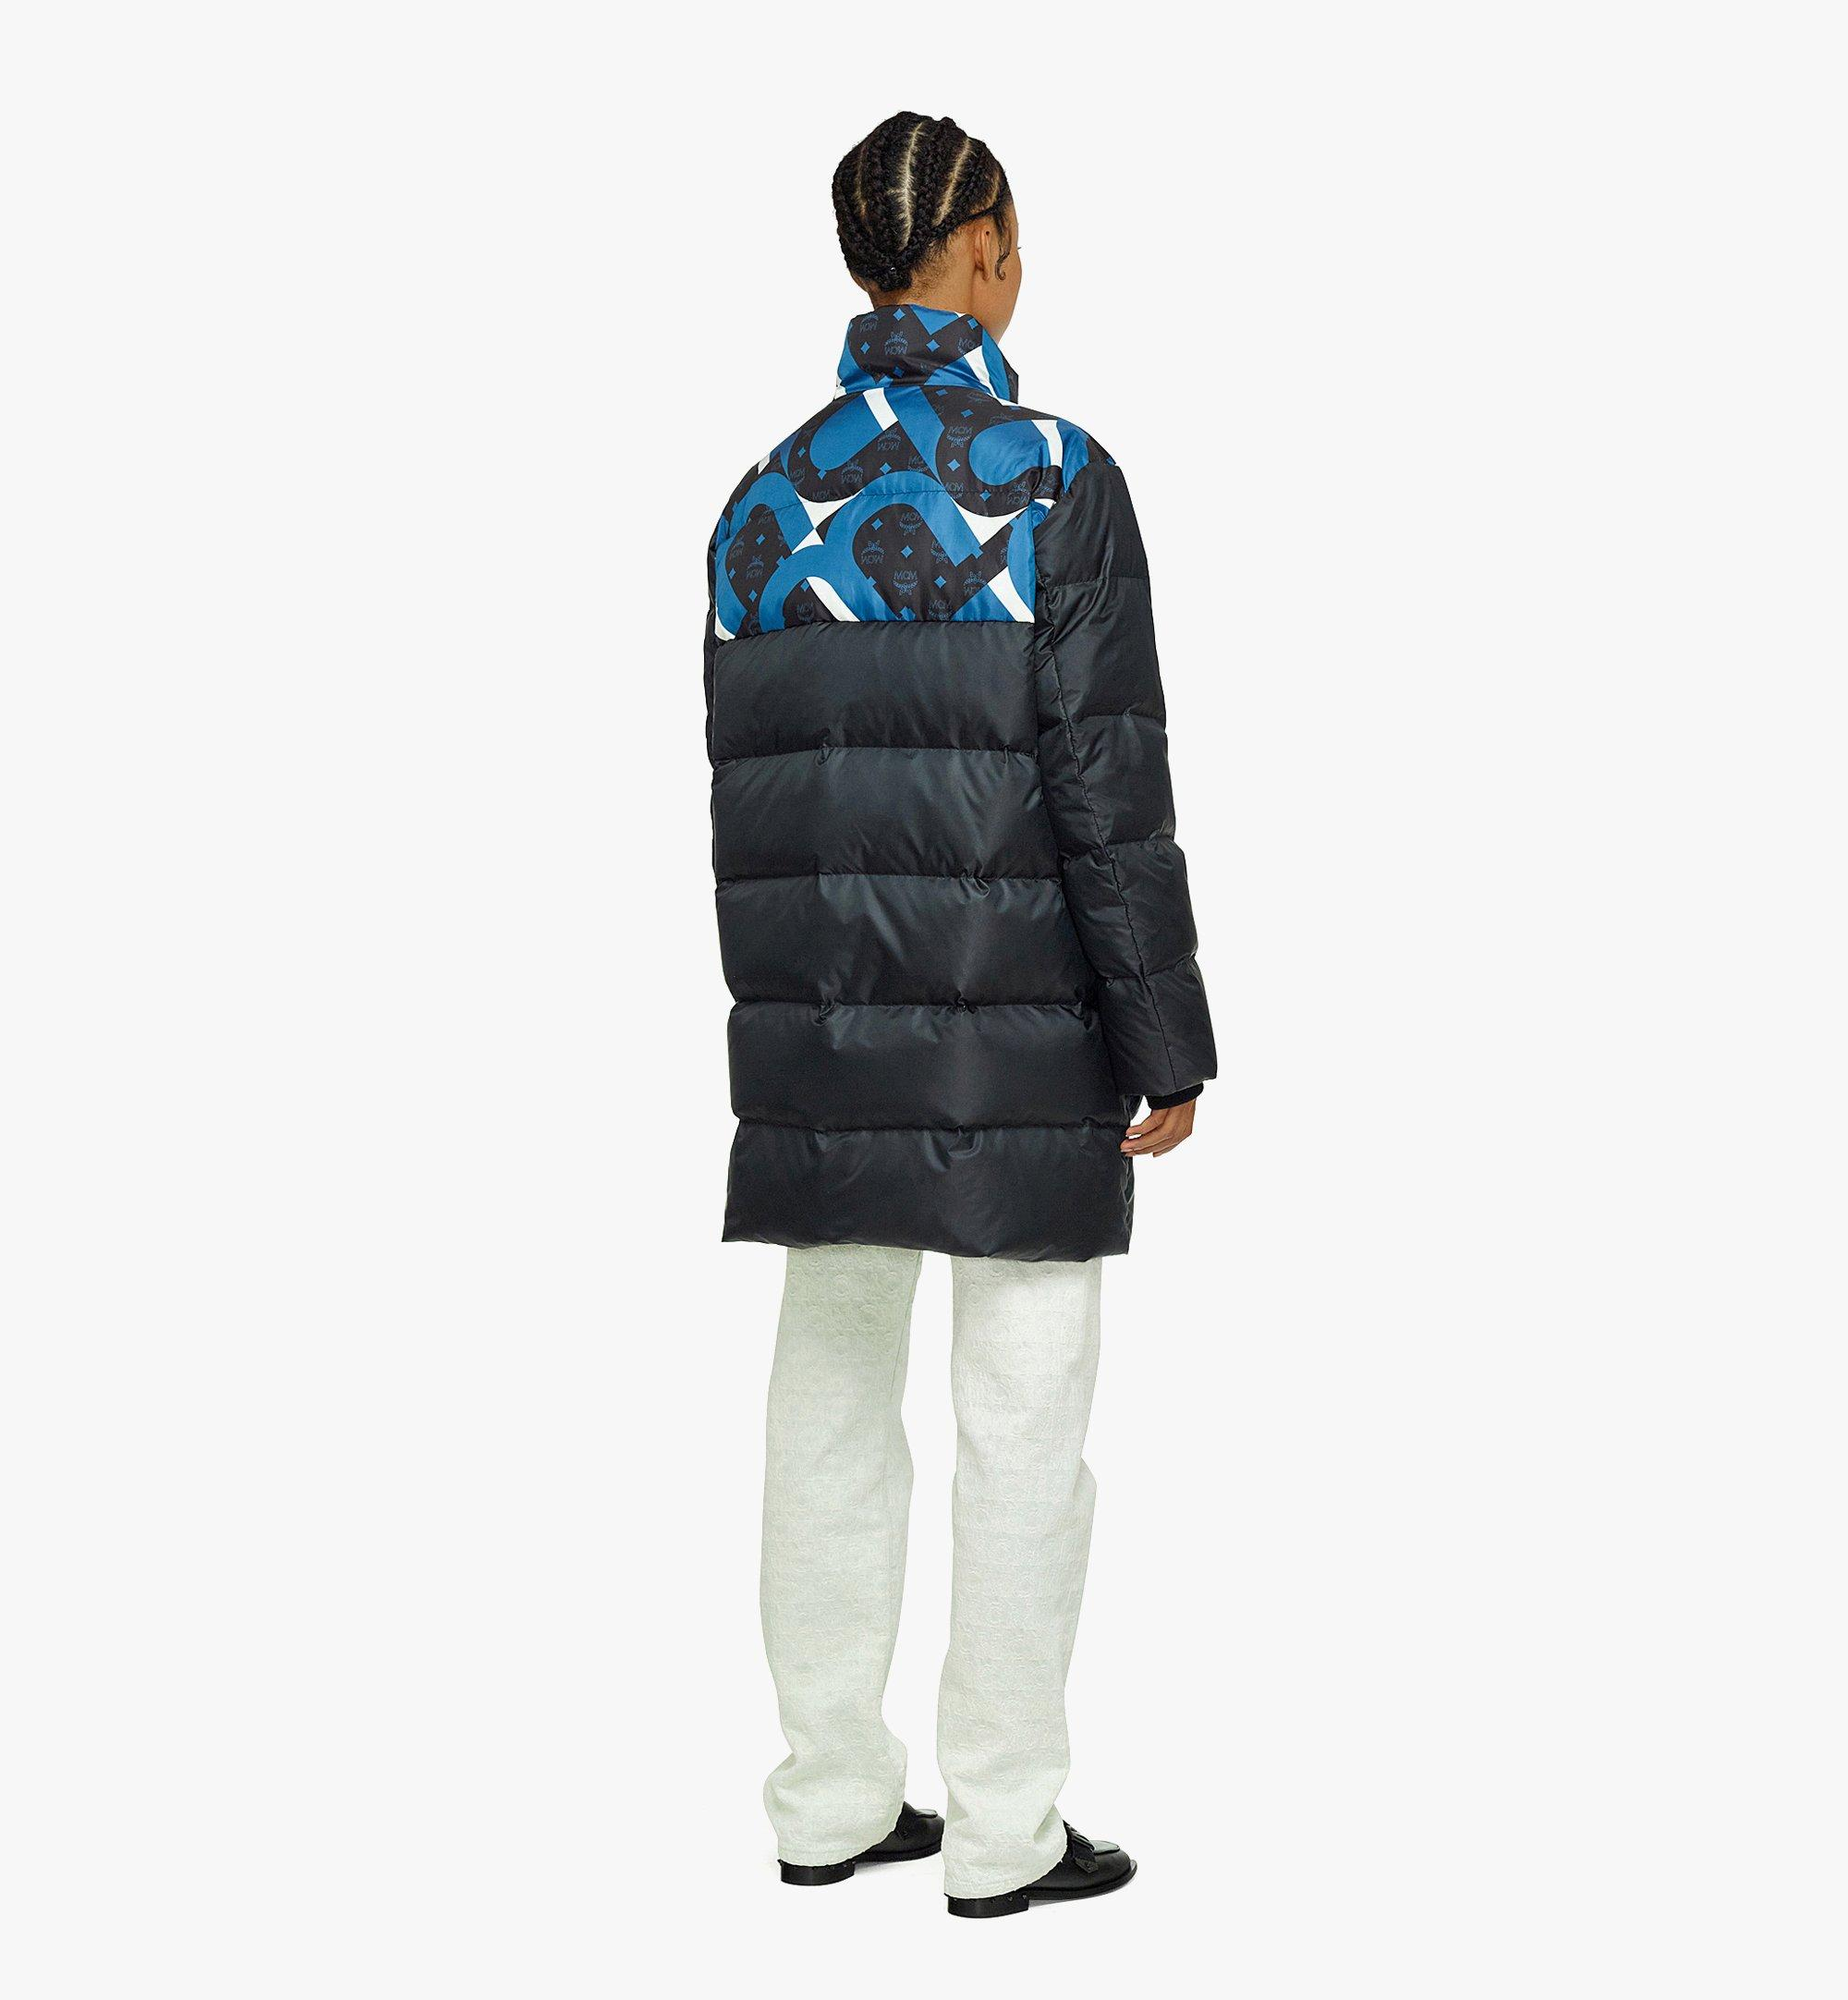 MCM Unisex Wave Visetos Down Jacket in Recycled Polyester Black MHCBASX01BK048 Alternate View 2